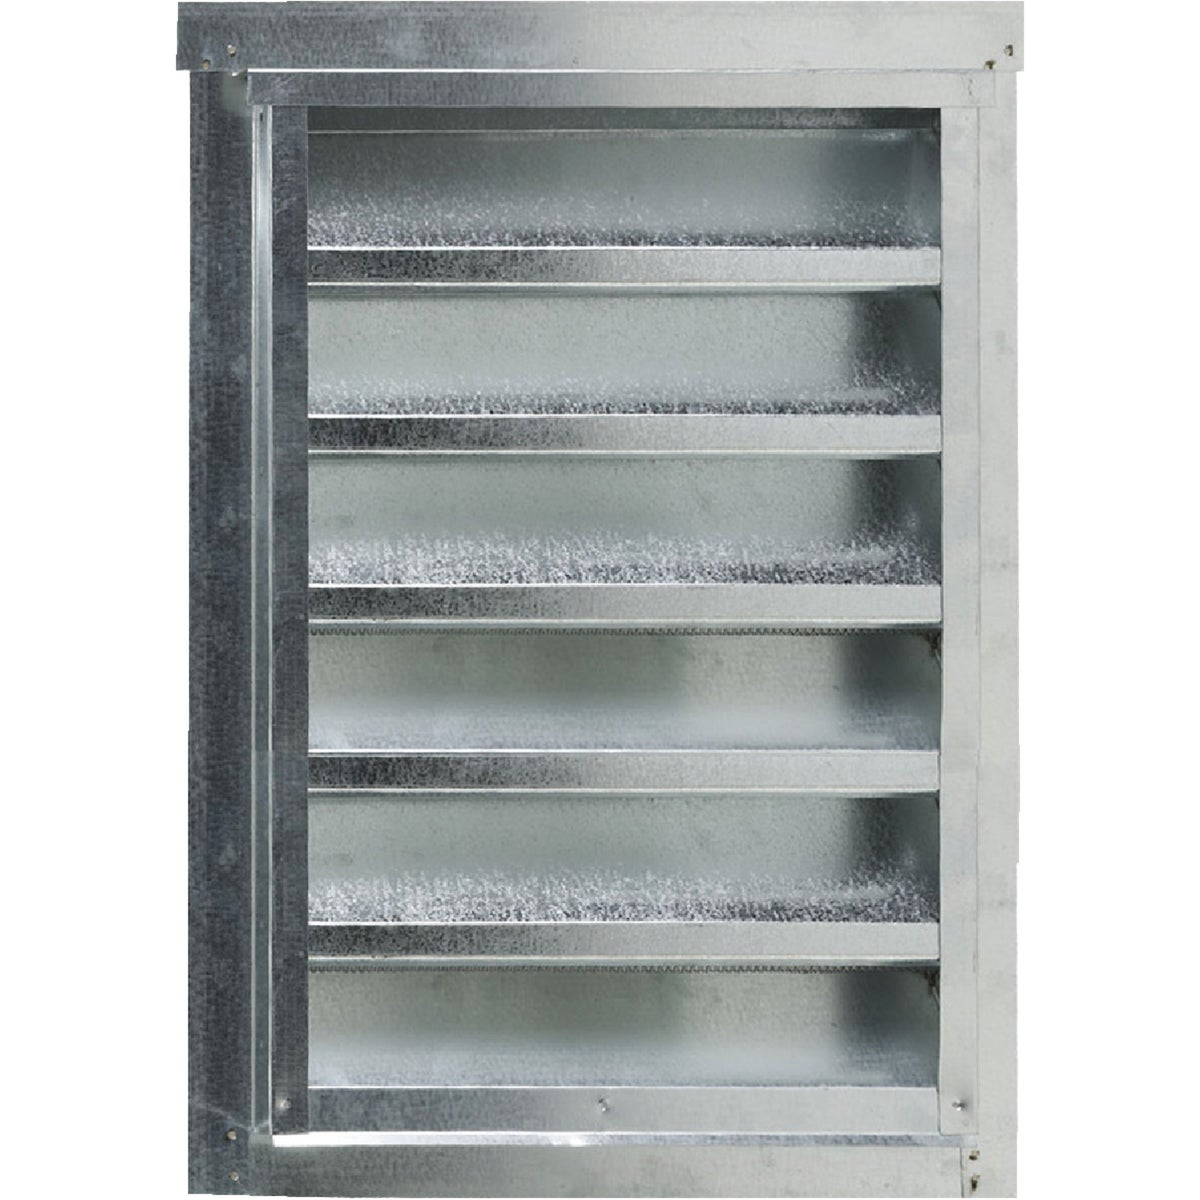 12X18 GALV ATTIC VENT - 553230 by Noll/norwesco Llc